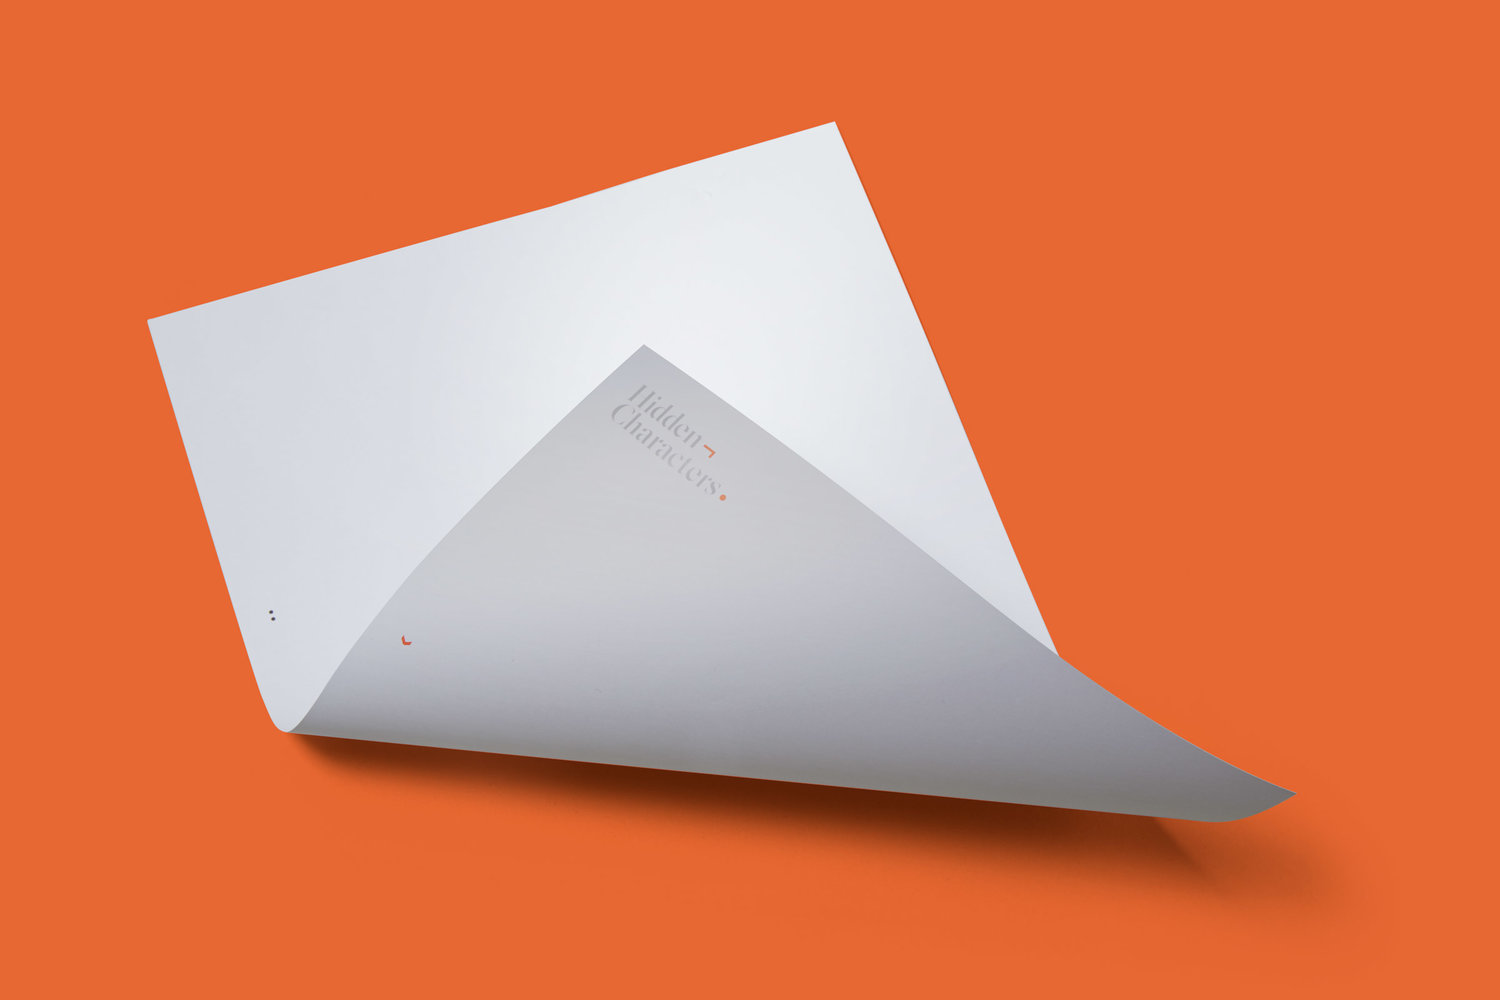 Brand identity and headed paper for Sydney-based PR firm Hidden Characters by RE, Australia